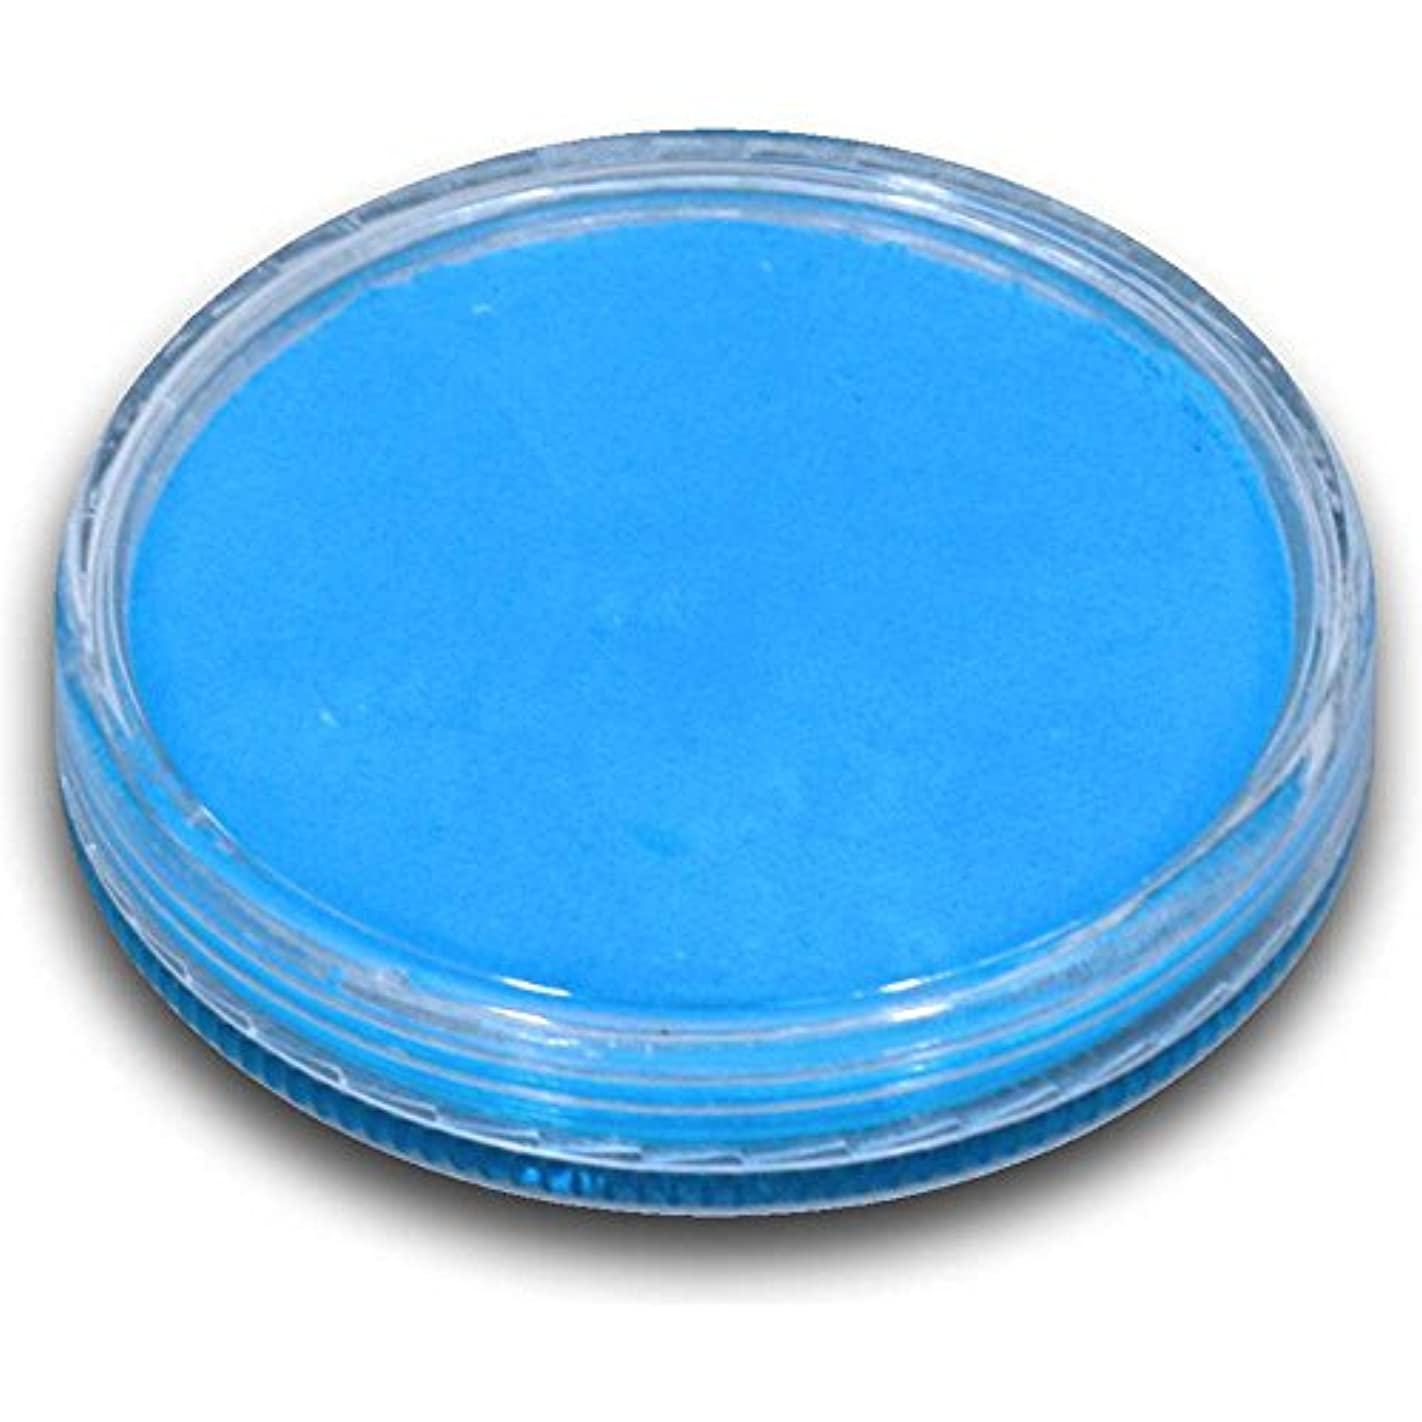 Wolfe FX Face Paints - Light Blue 066 (30 gm) s79997598422